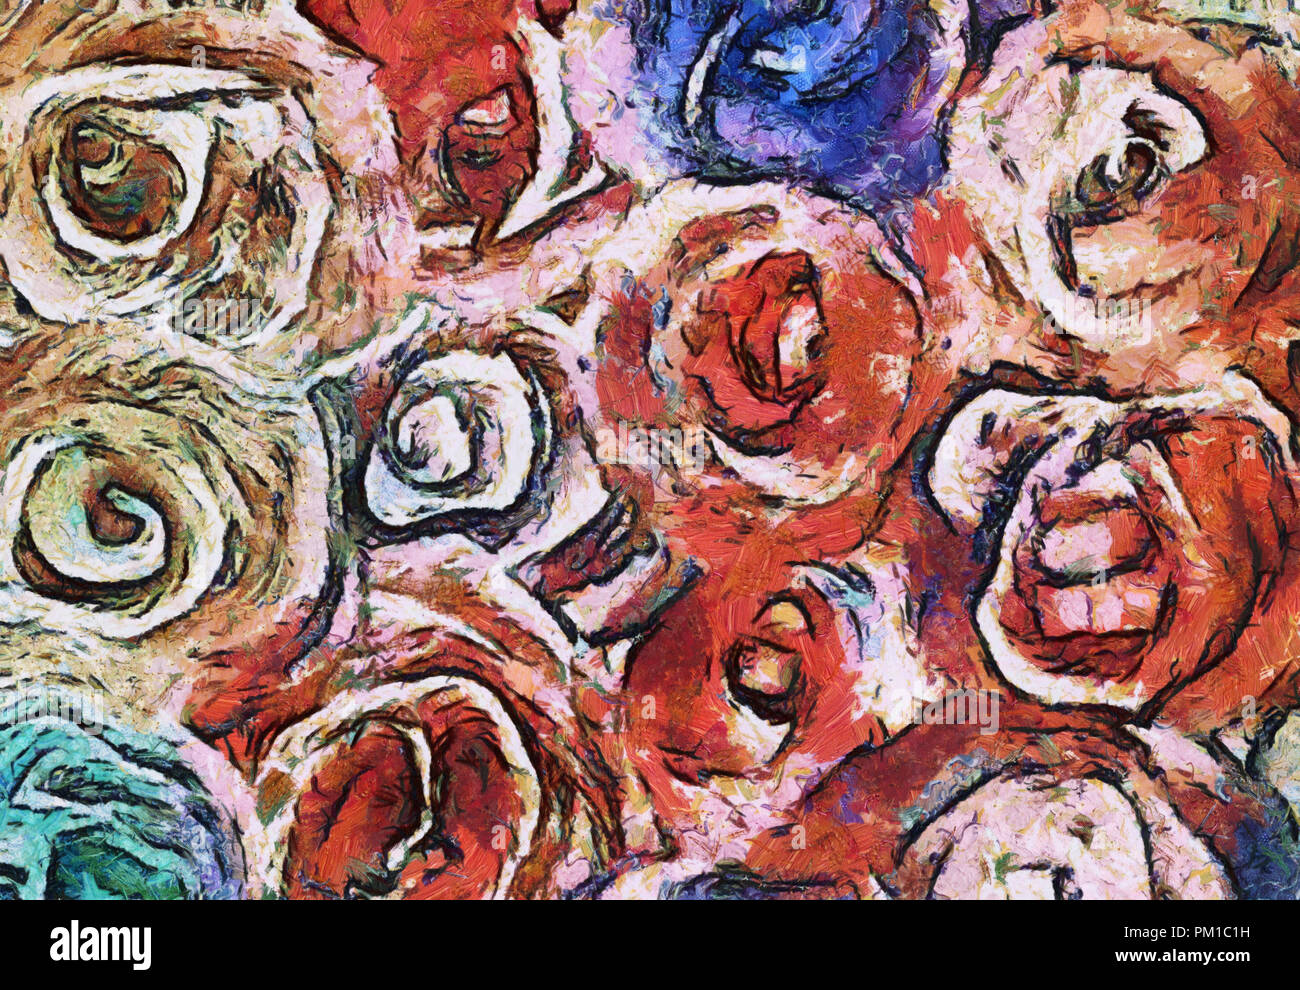 art abstract pencil drawing pattern background in red, green and blue colors in the shape of flowers - Stock Image